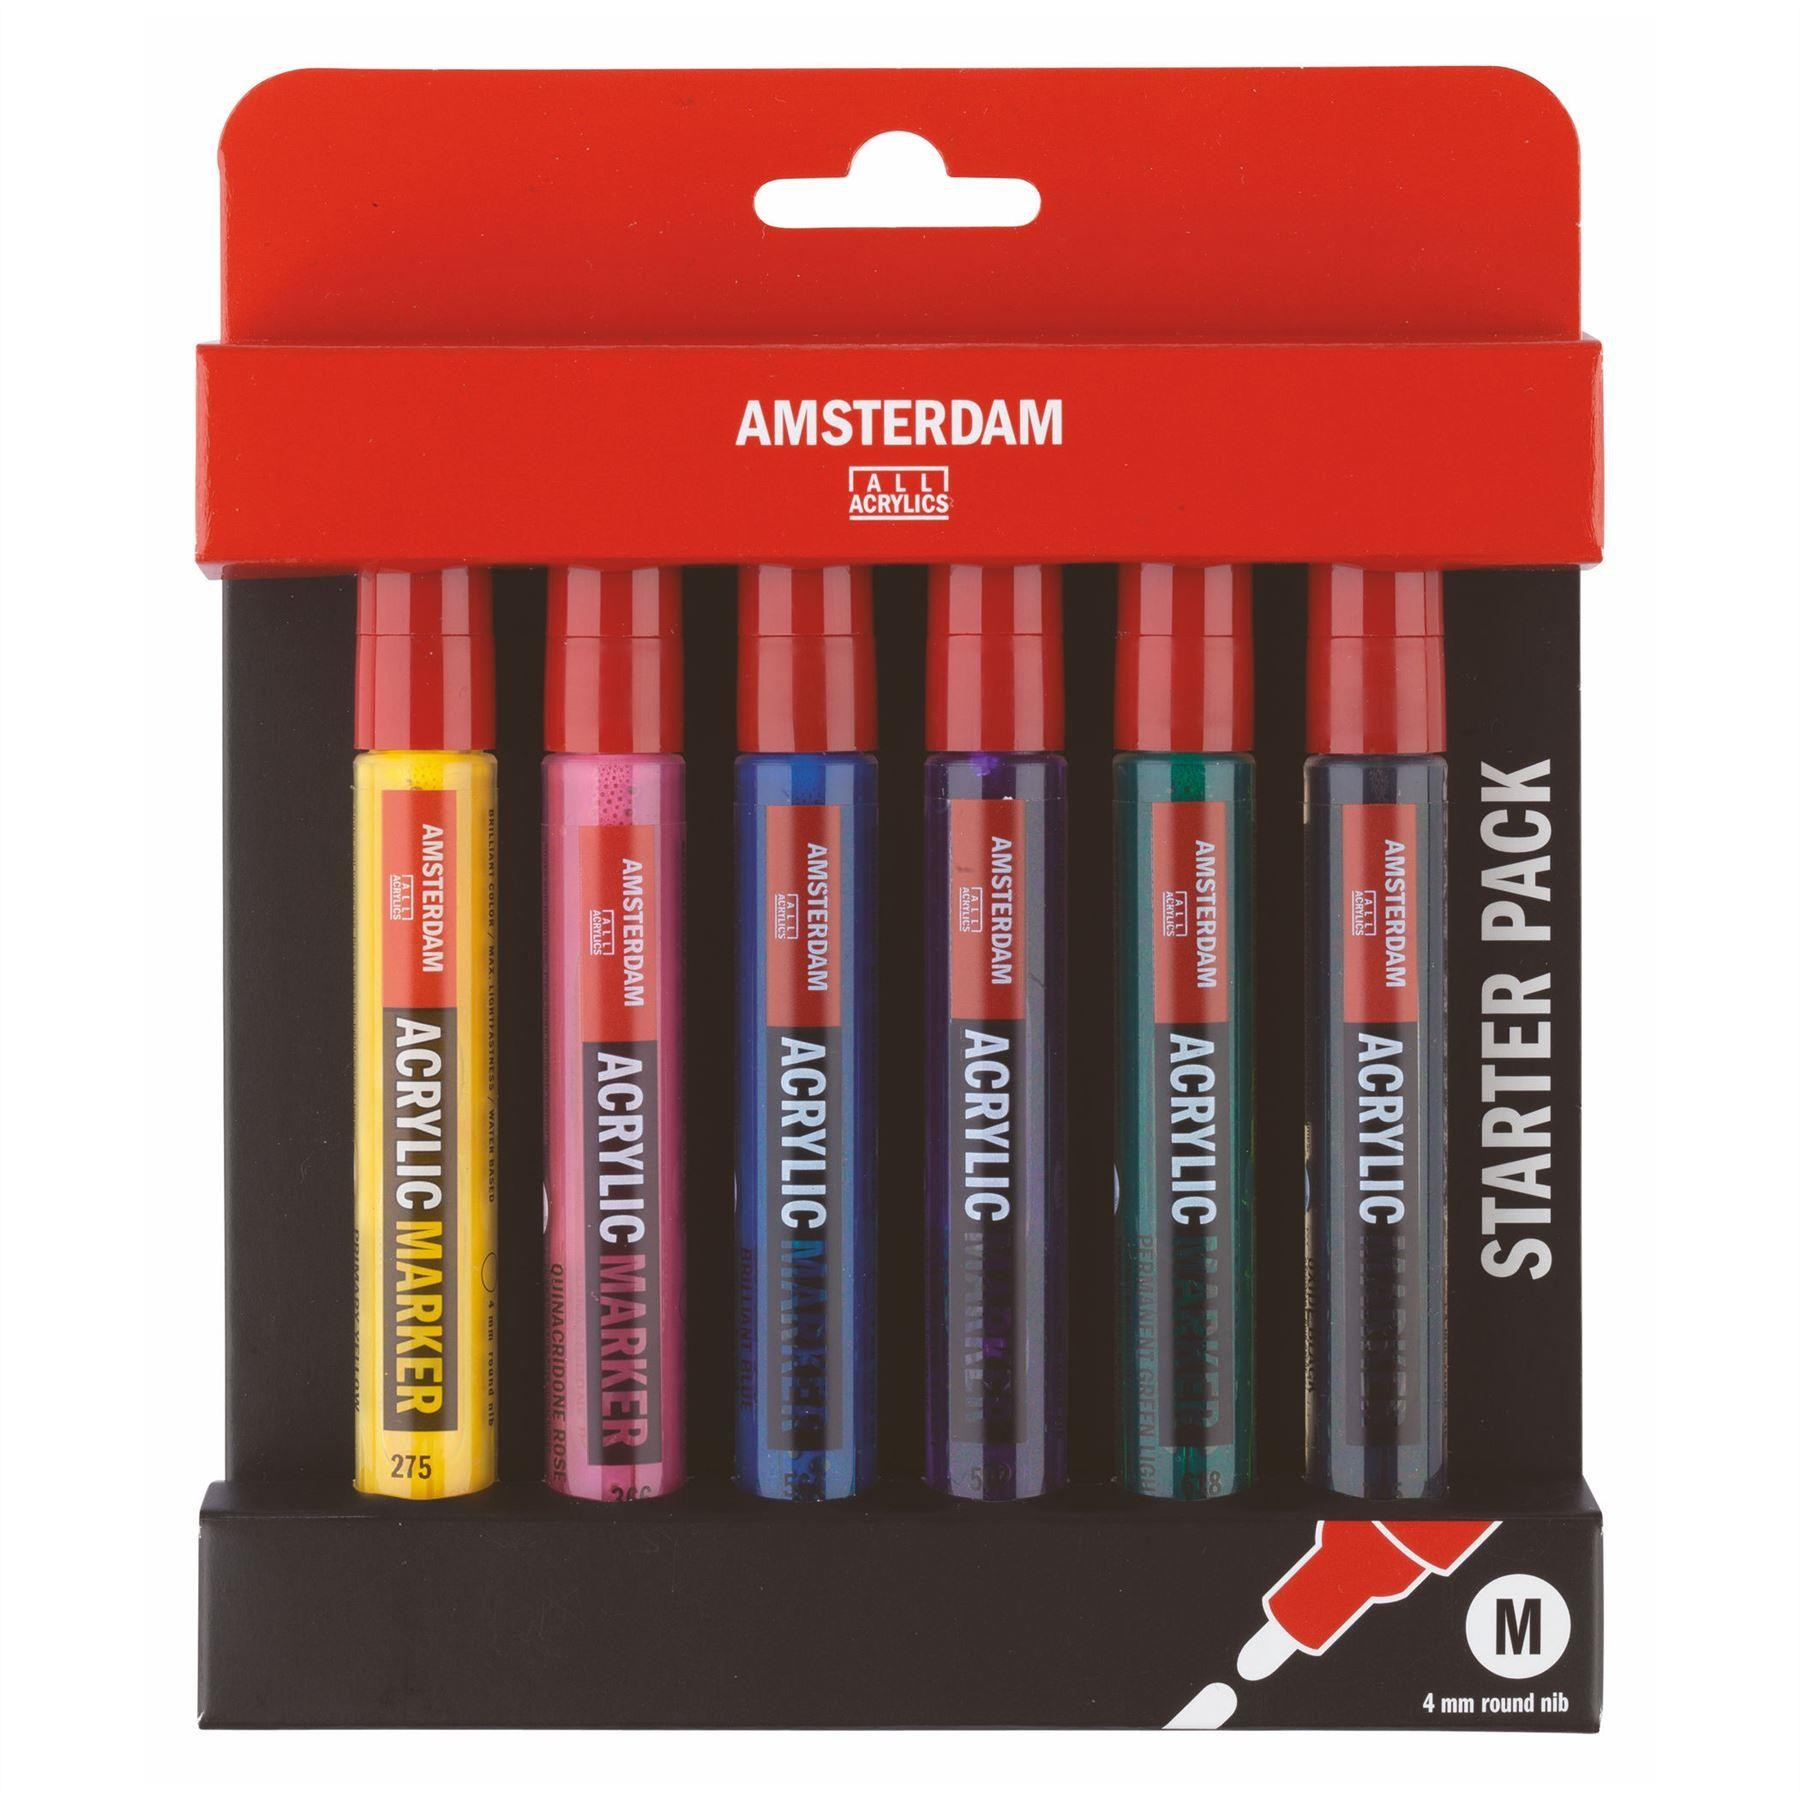 Talens Amsterdam all acrylic markers basic set of 6